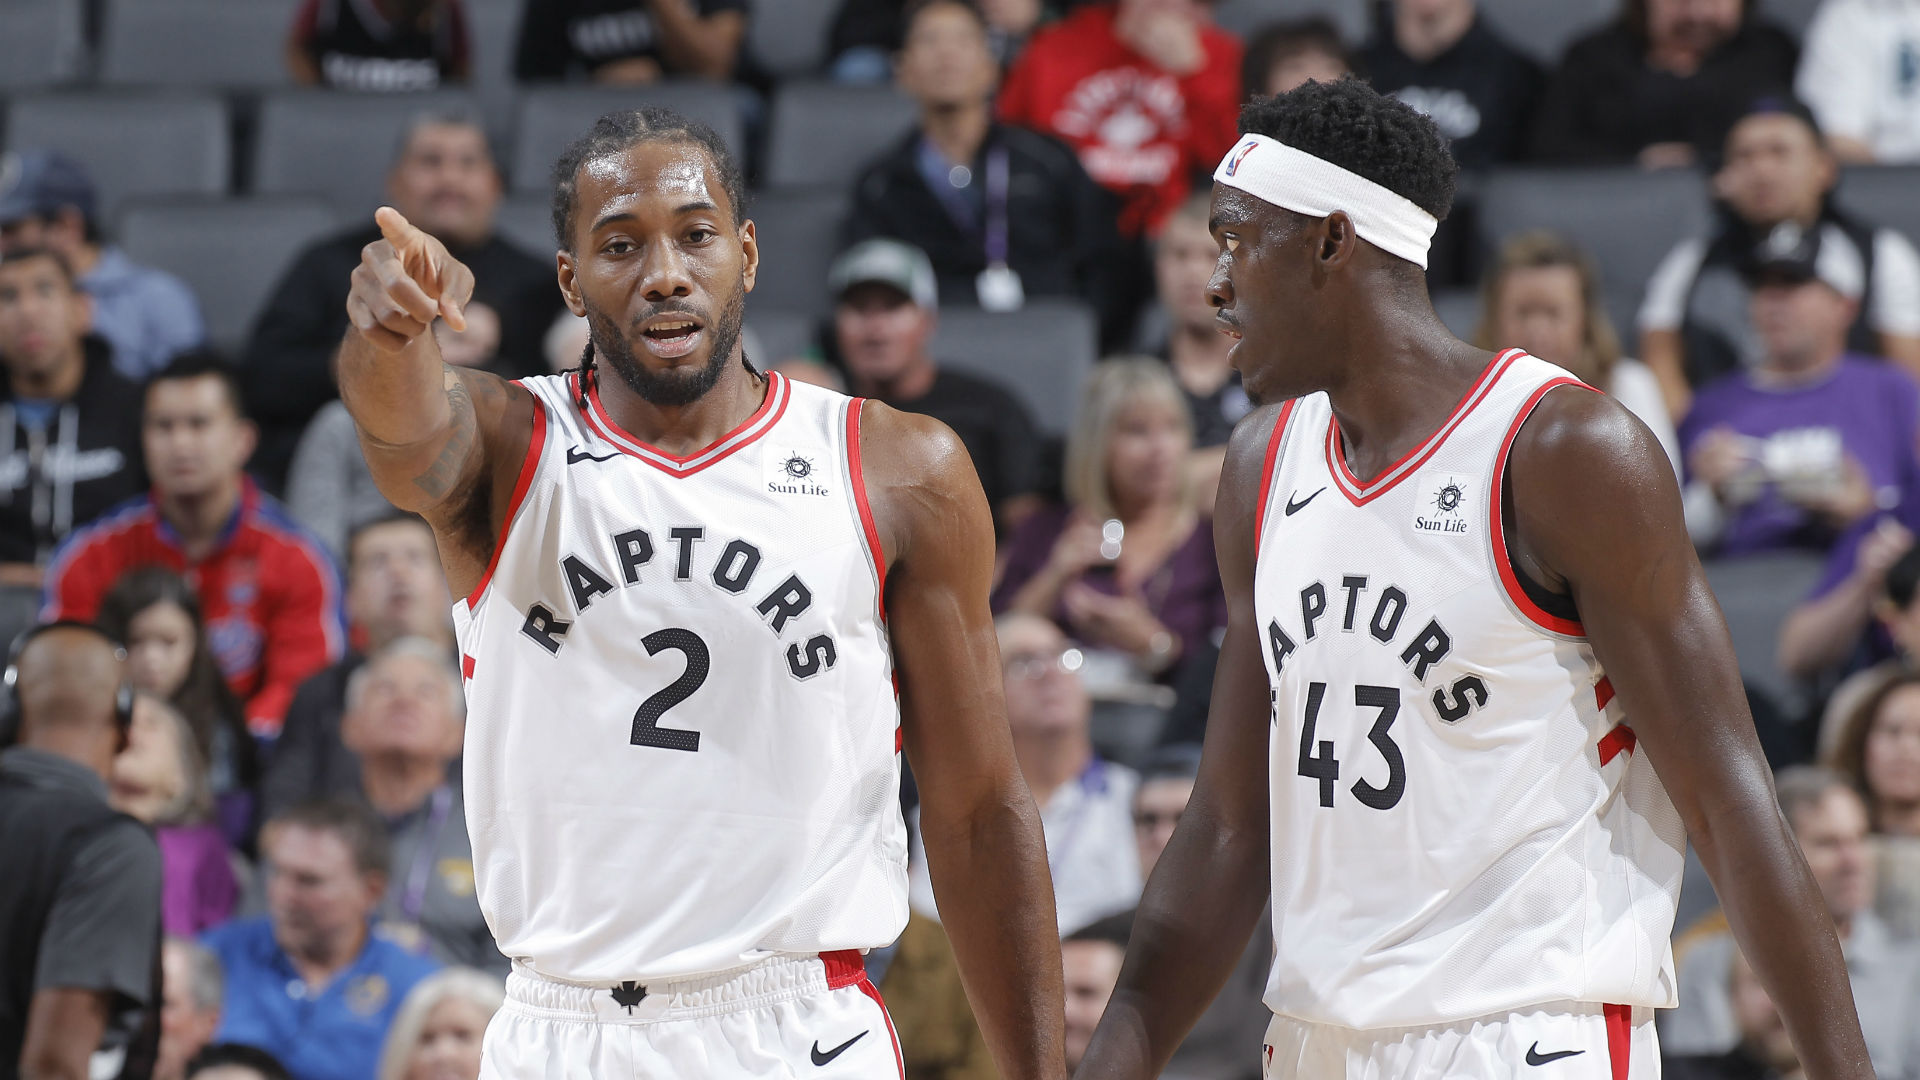 In games that Kawhi Leonard has missed, Pascal Siakam has been the Raptors' leading scorer.